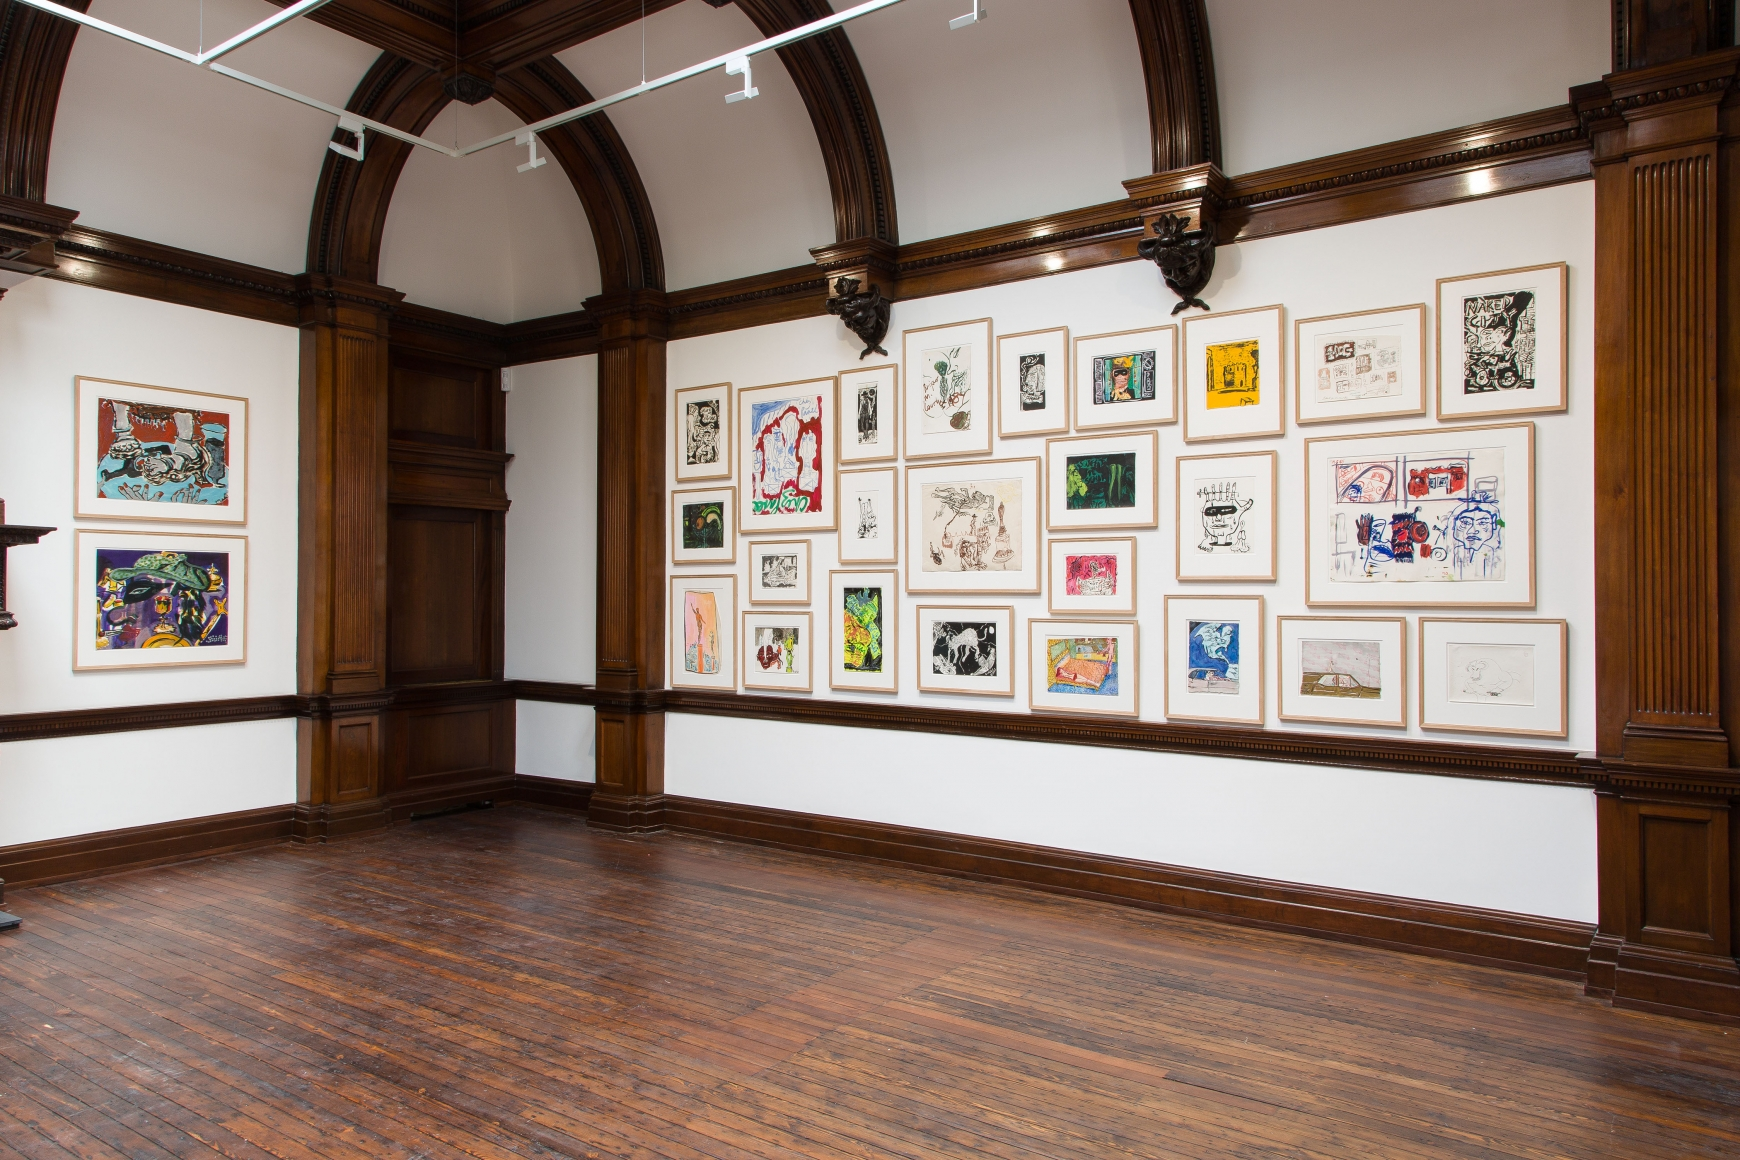 Peter Doig, Early Works, London, 2014, Installation Image 11